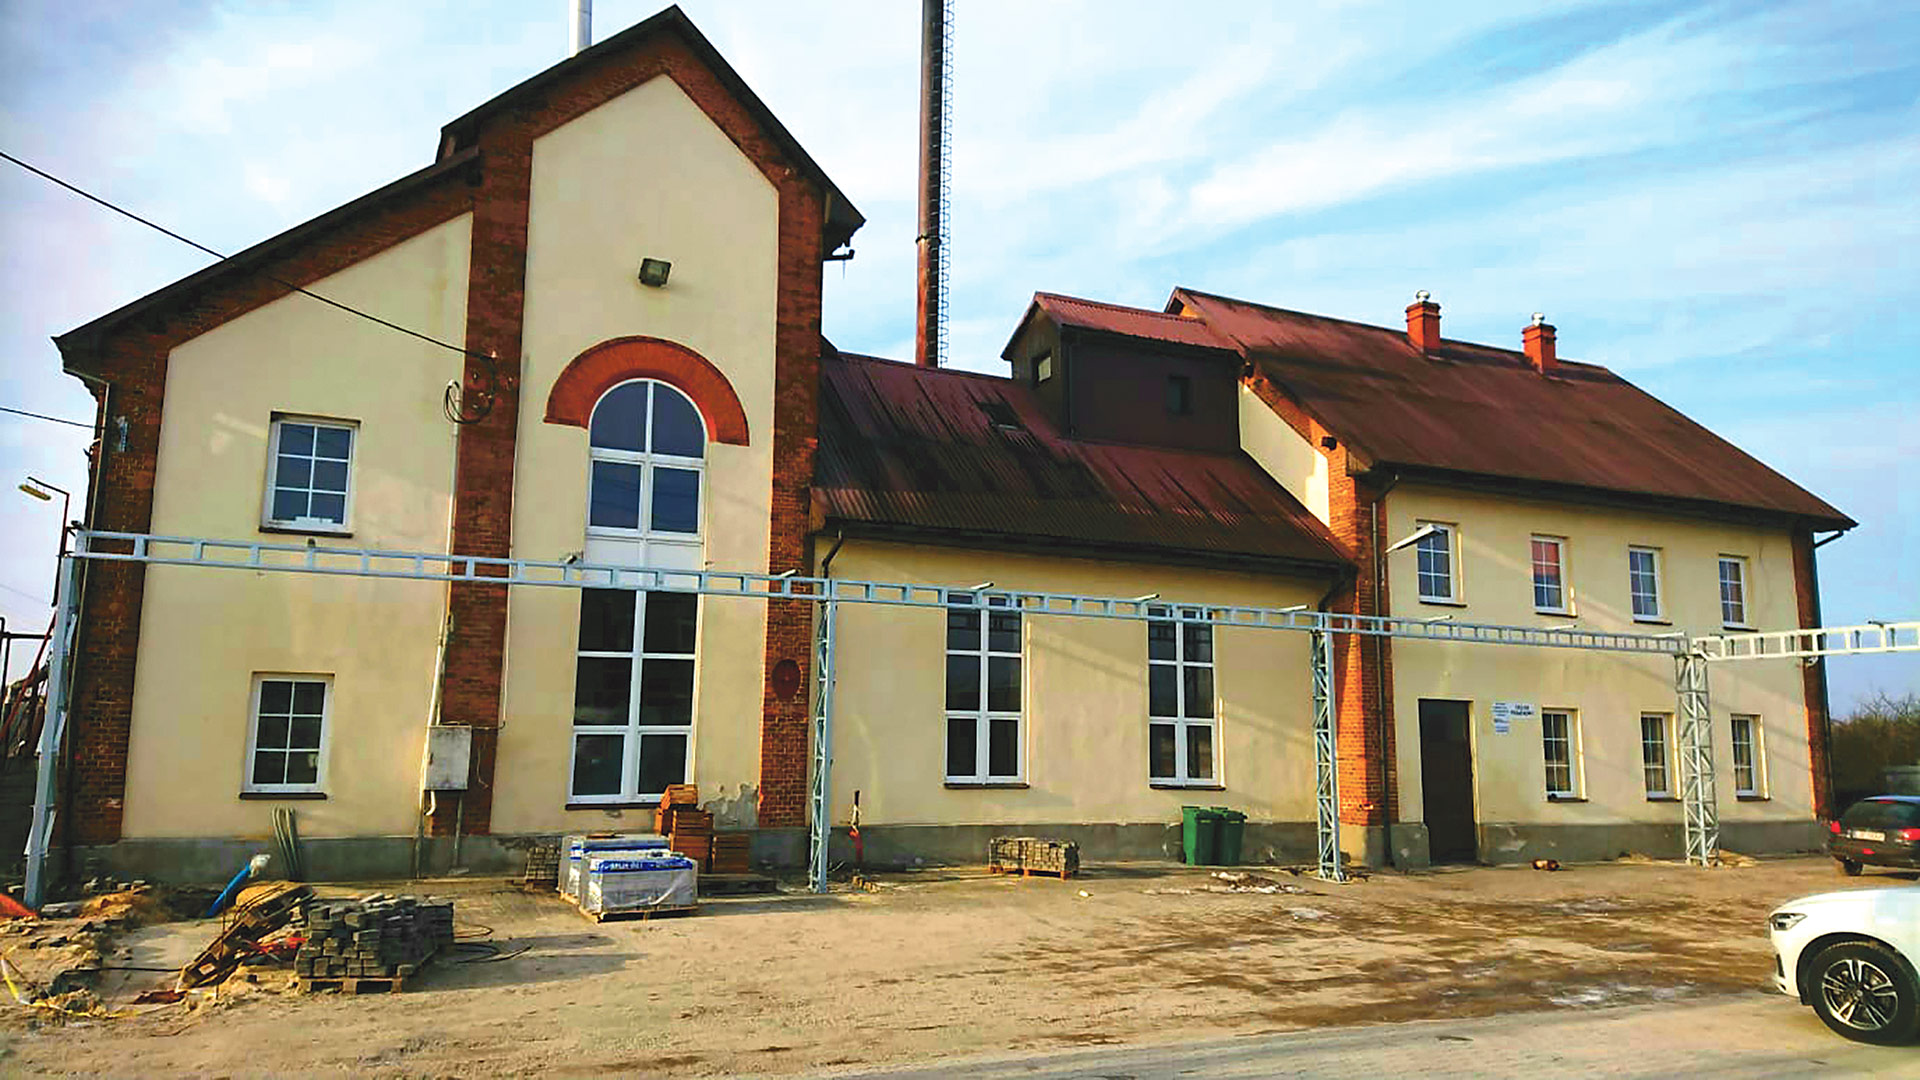 The distillery in Kanien, Poland has a long history, and V-One Vodka will be writing an intriguing new chapter.